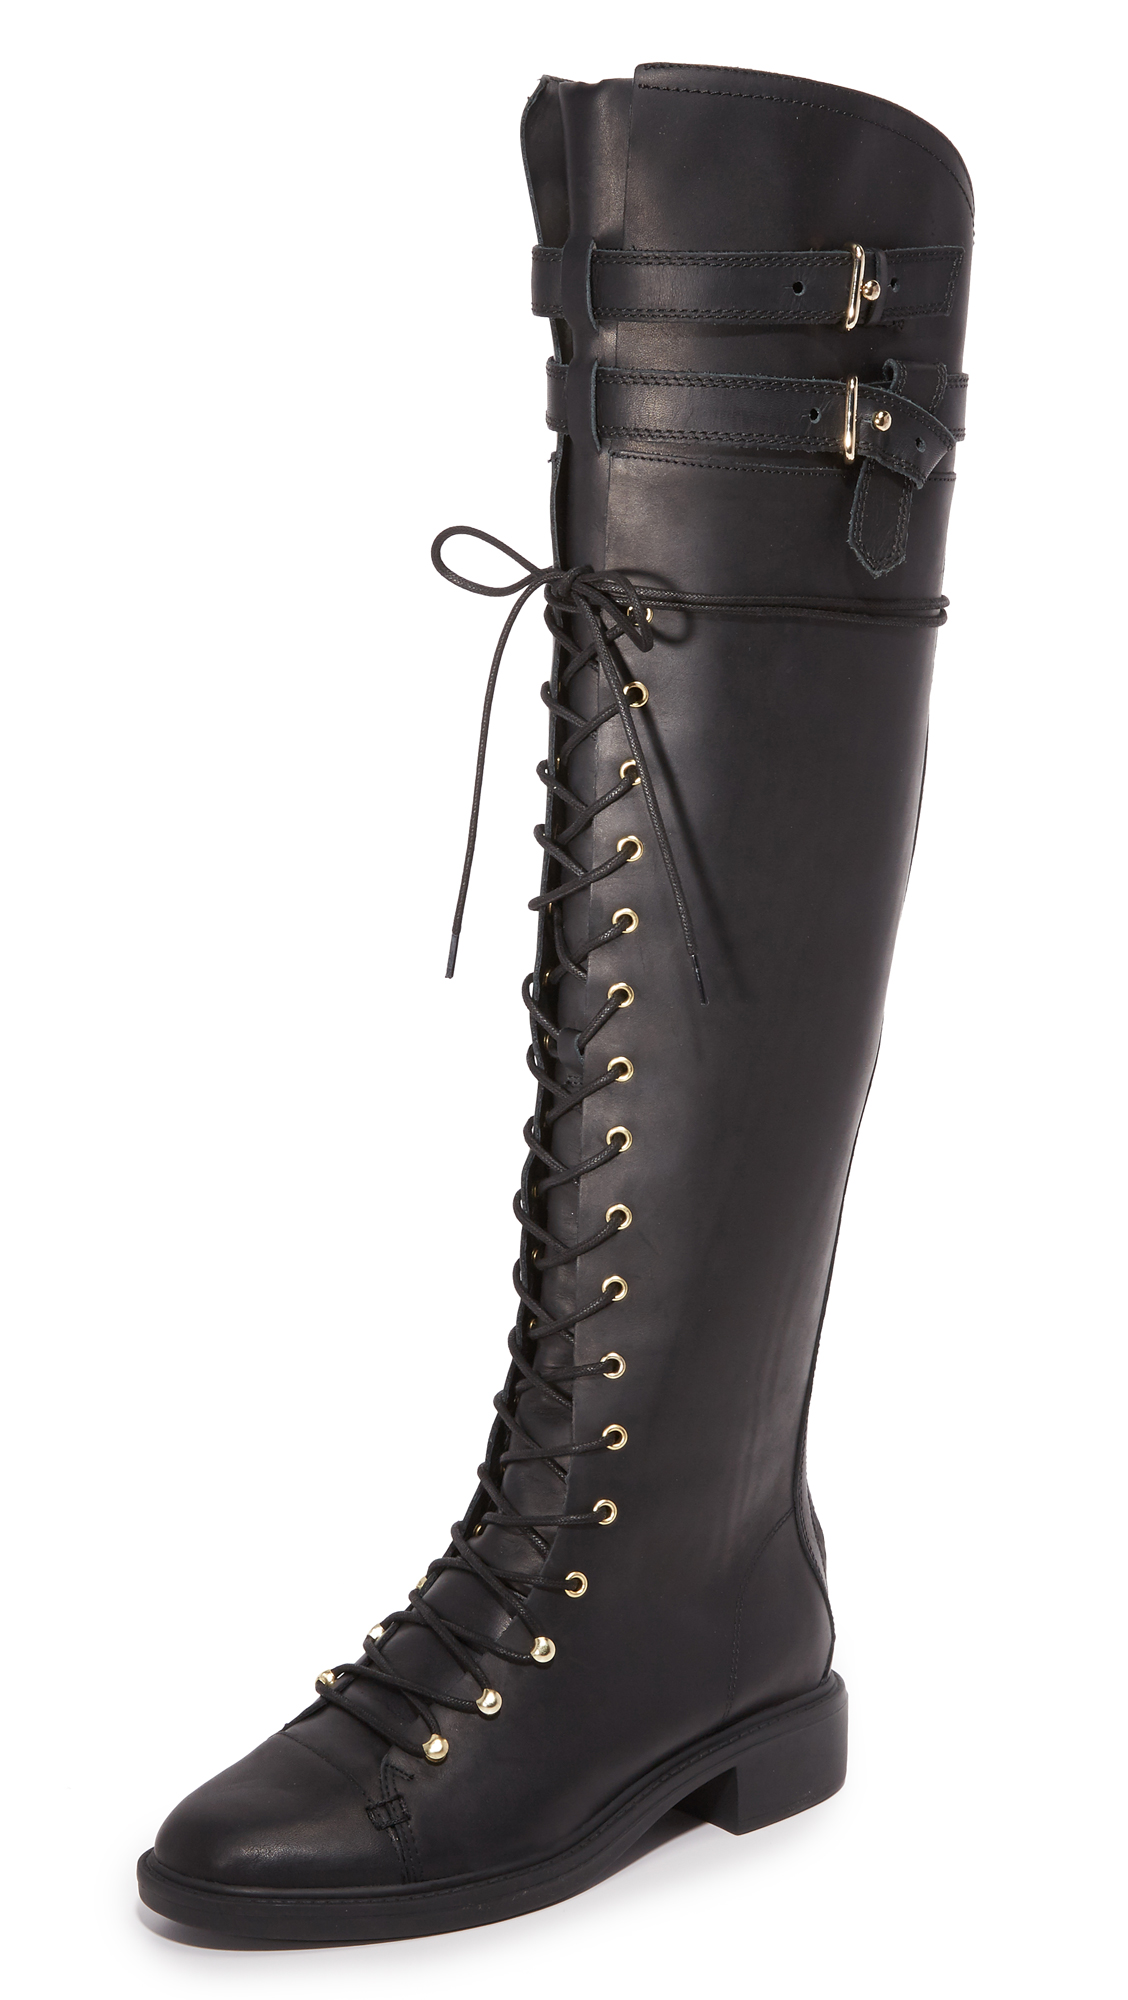 Joie Gryffin Lace Up Over The Knee Boots - Black